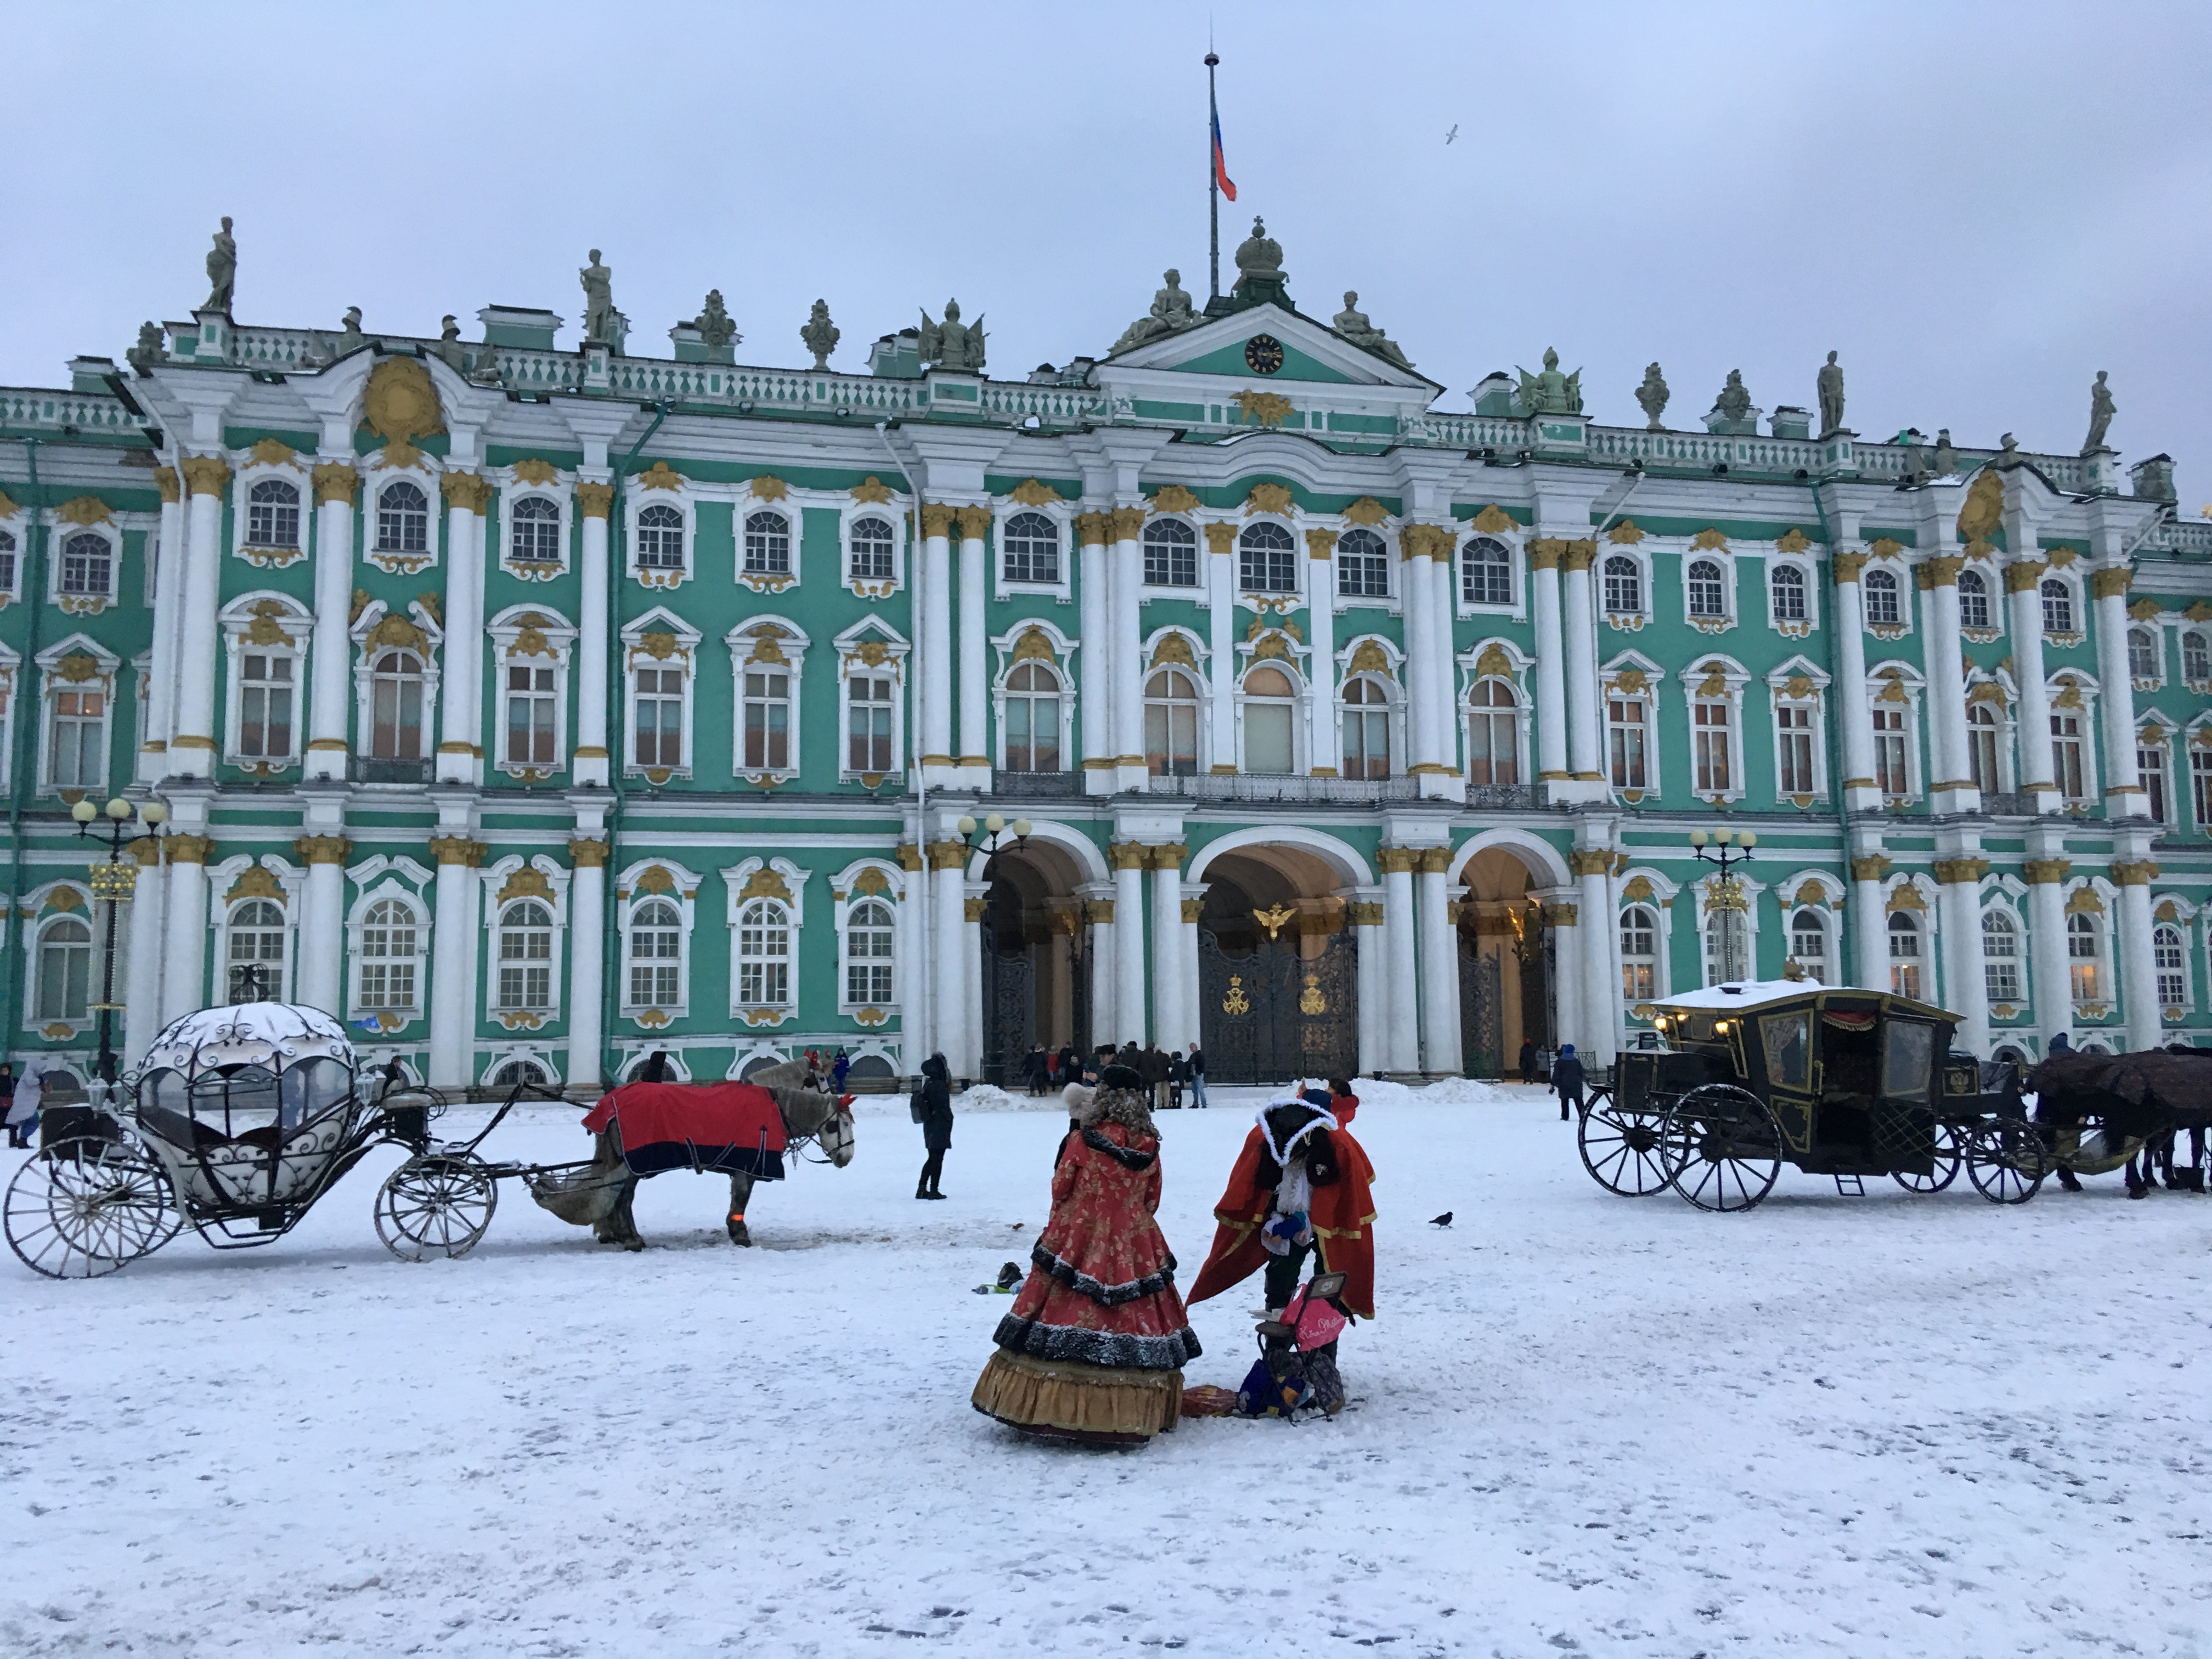 A student from St. Petersburg spent a month on a scholarship of 1572 rubles and urged everyone to be more modest